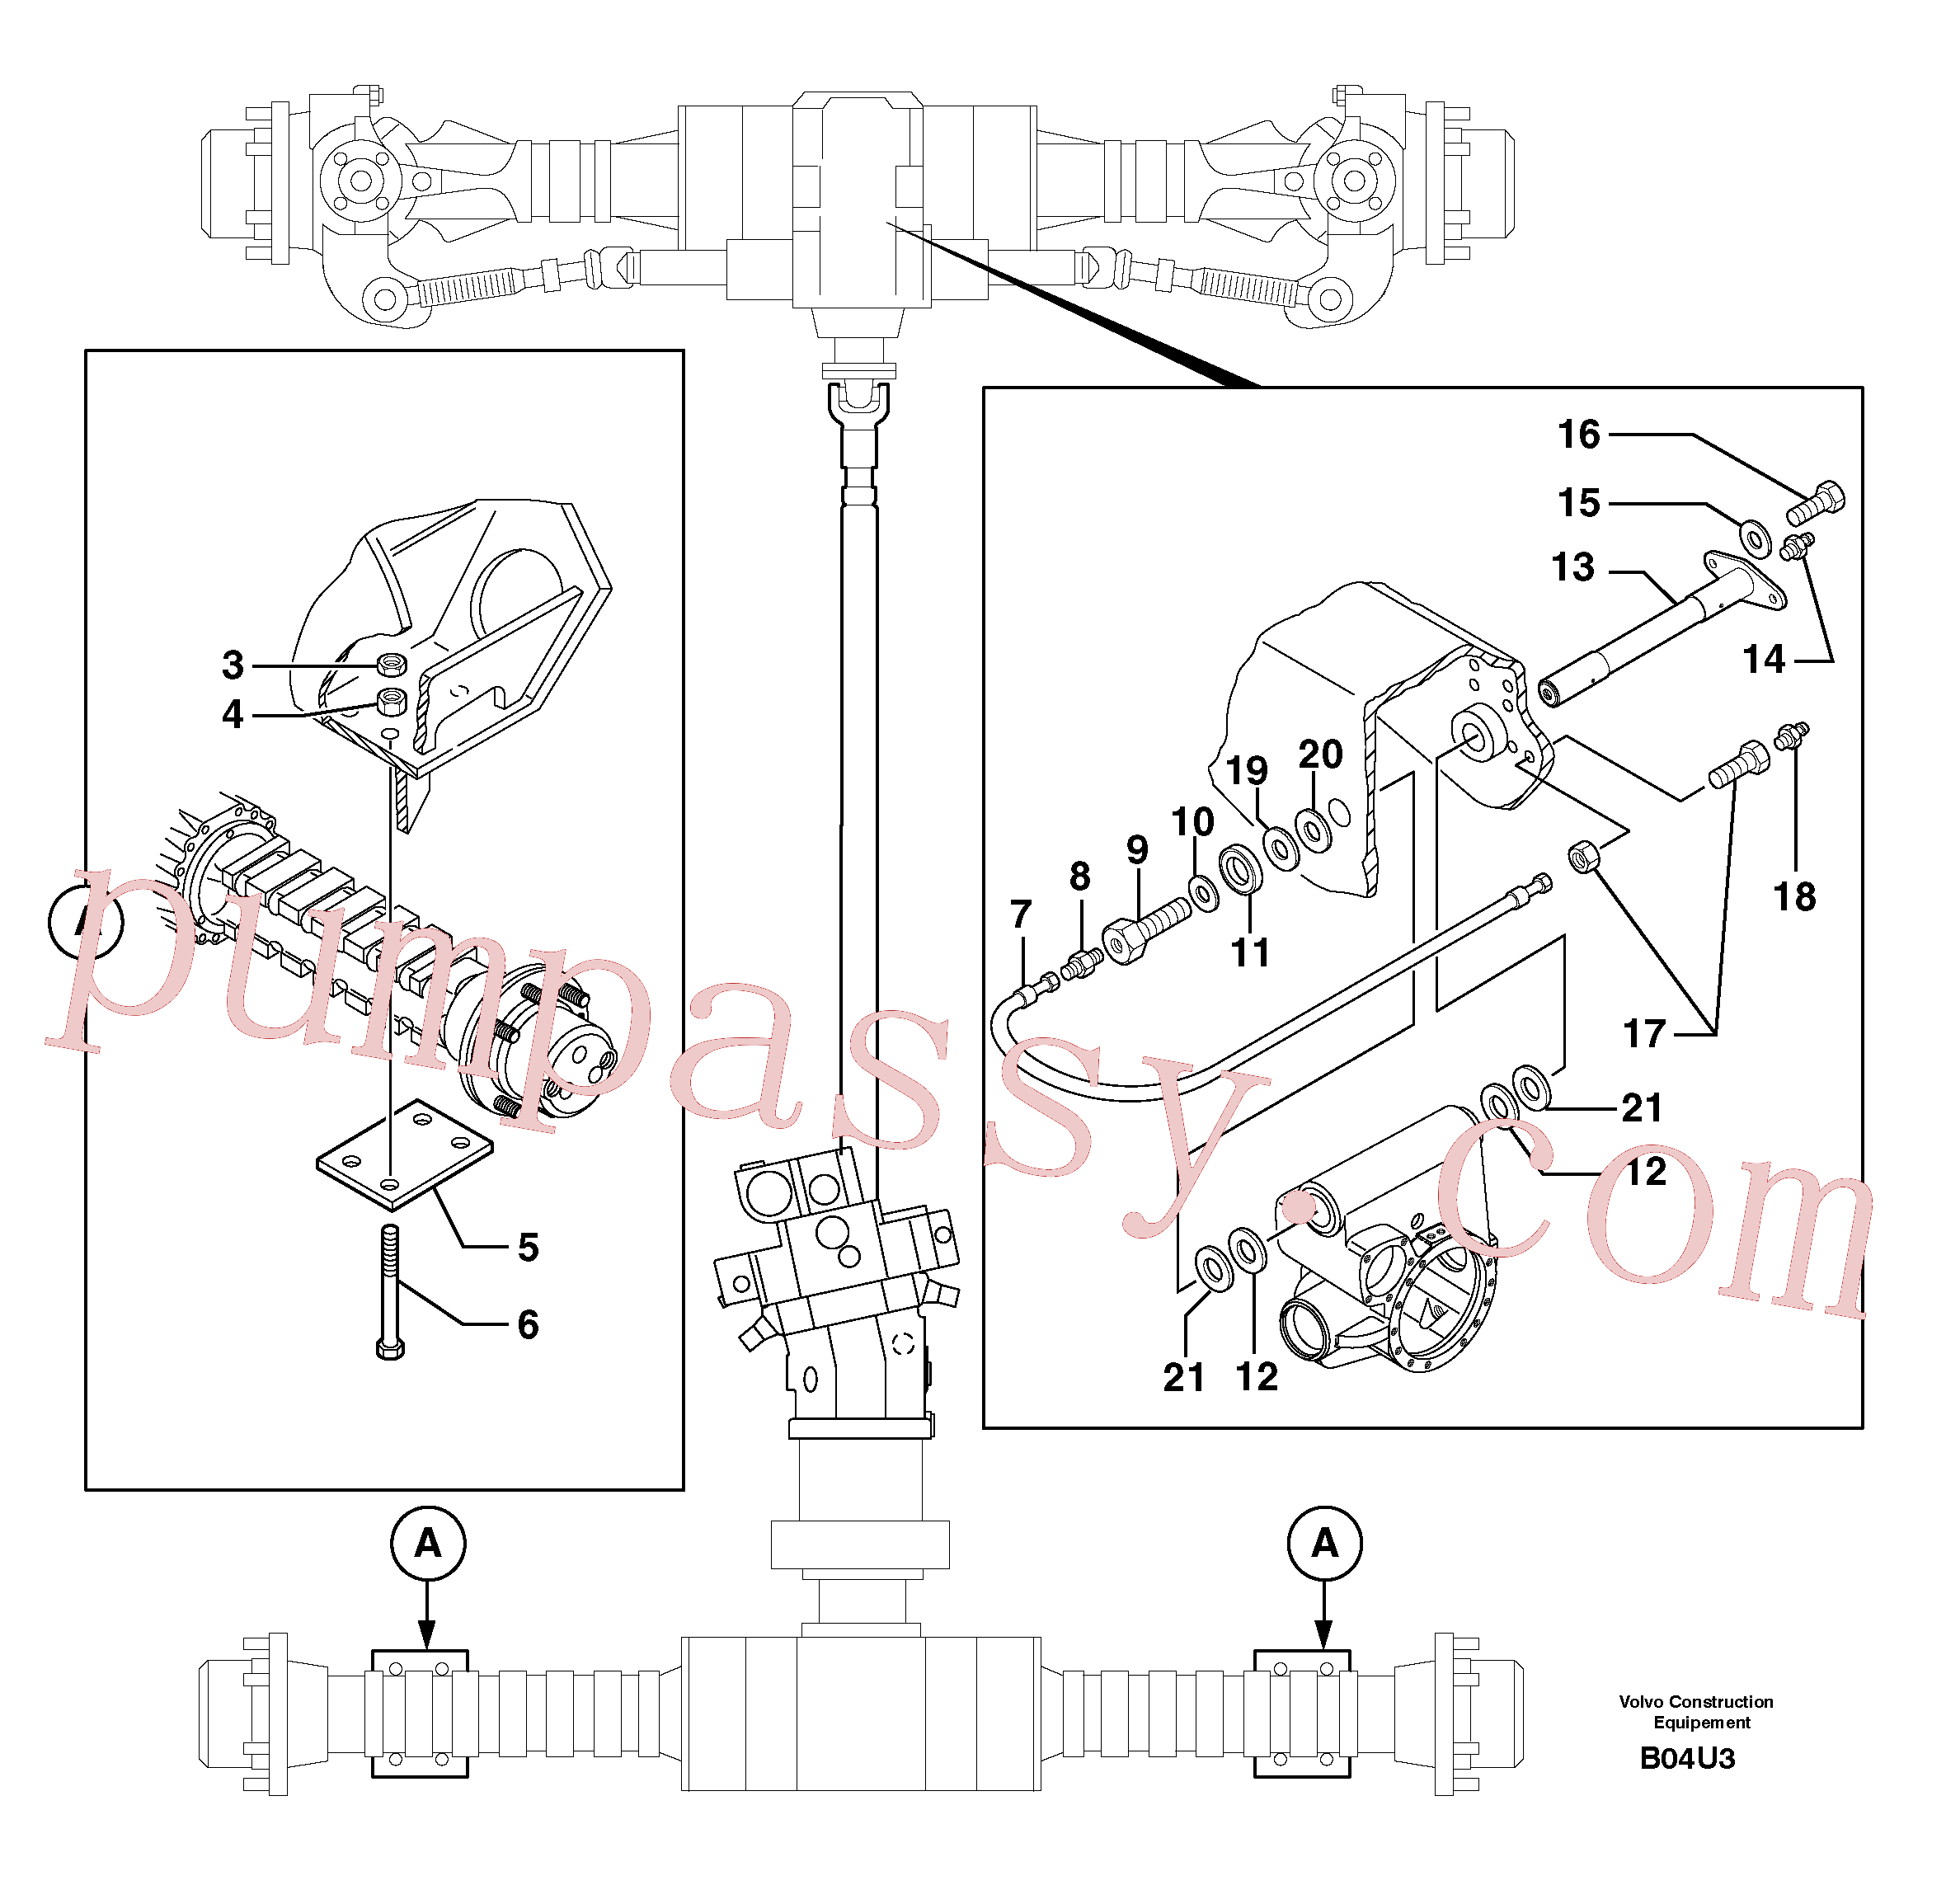 PJ5530103 for Volvo Axle cradles and mountings(B04U3 assembly)